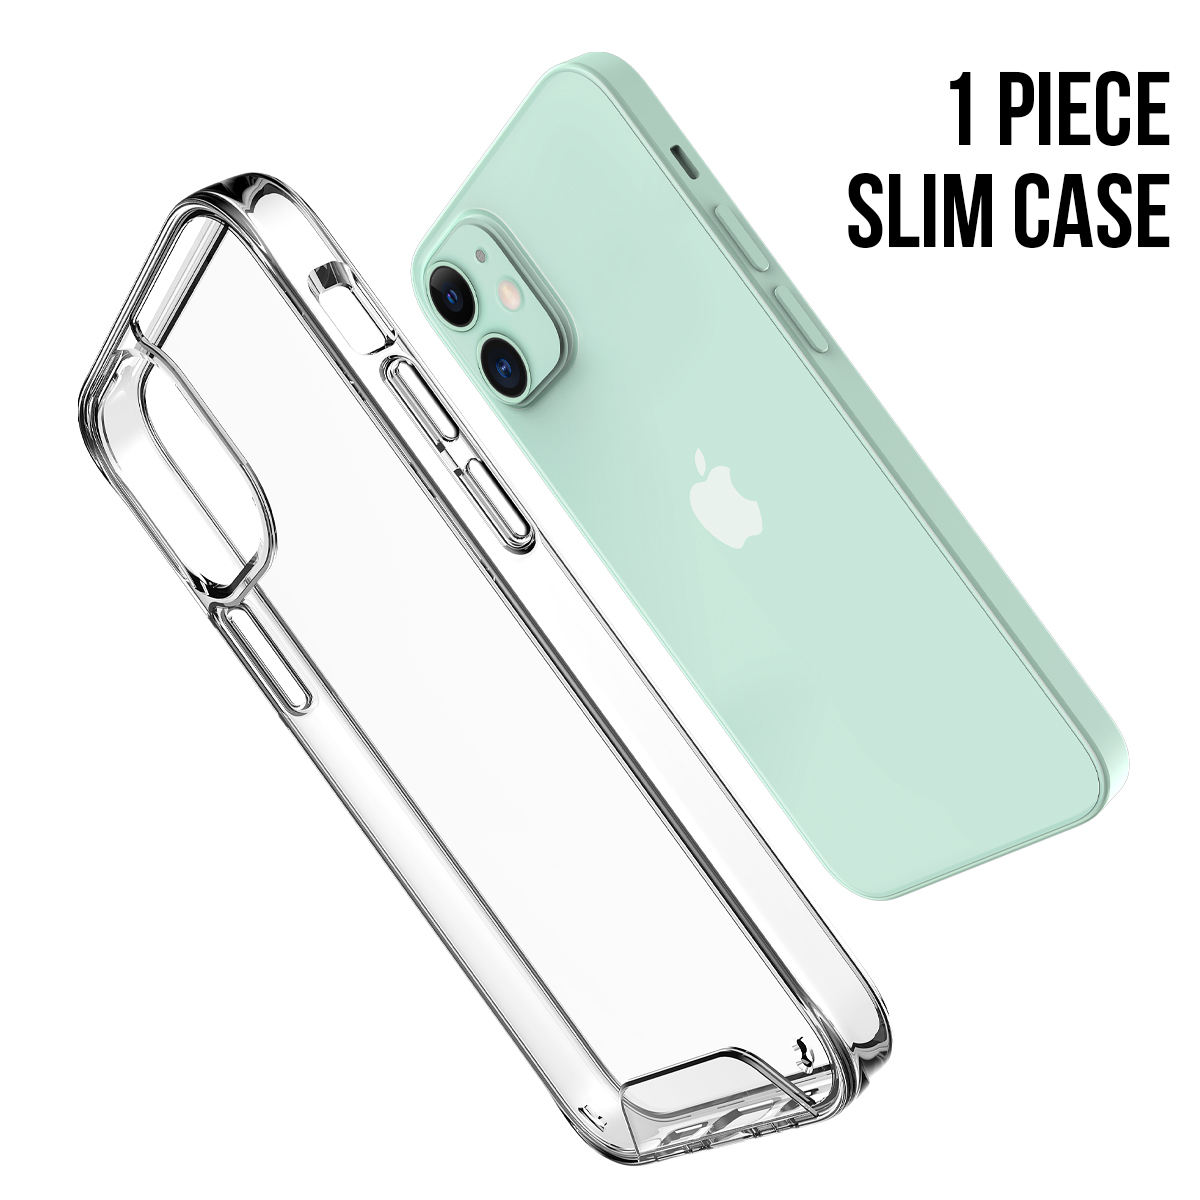 Mettallic Button AirJacket Clear Shock Absorption Mobile Phone Case for iphone 12 Pro Max